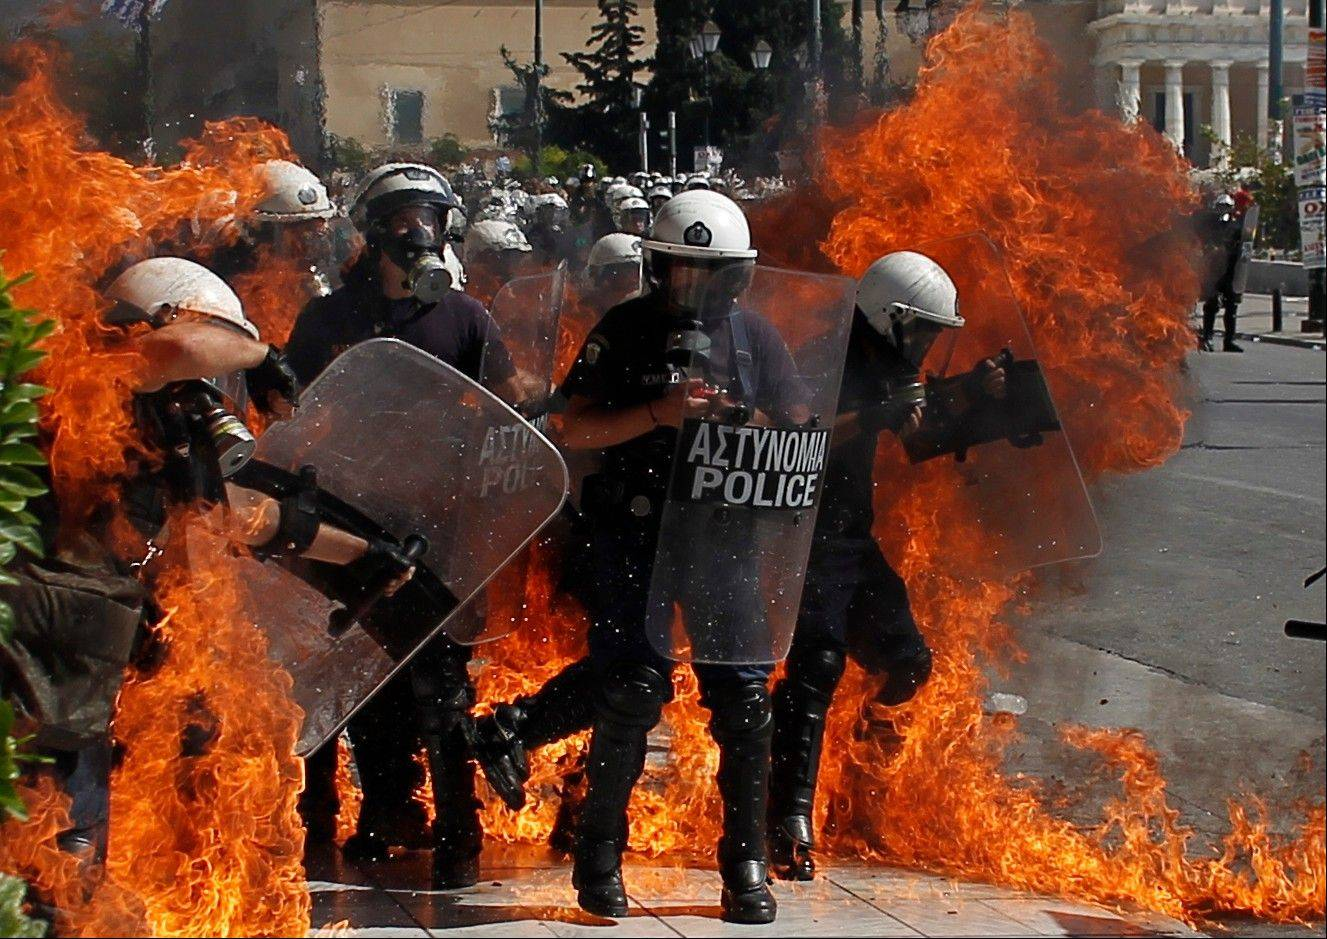 A fire bomb explodes among riot police during clashes in Athens Wednesday Sept. 26, 2012. Greek workers walked off the job Wednesday for the first general strike since the country's coalition government was formed in June, as the prime minister and finance minister hammered out a package of euros 11.5 billion ($14.87 billion) in spending cuts.